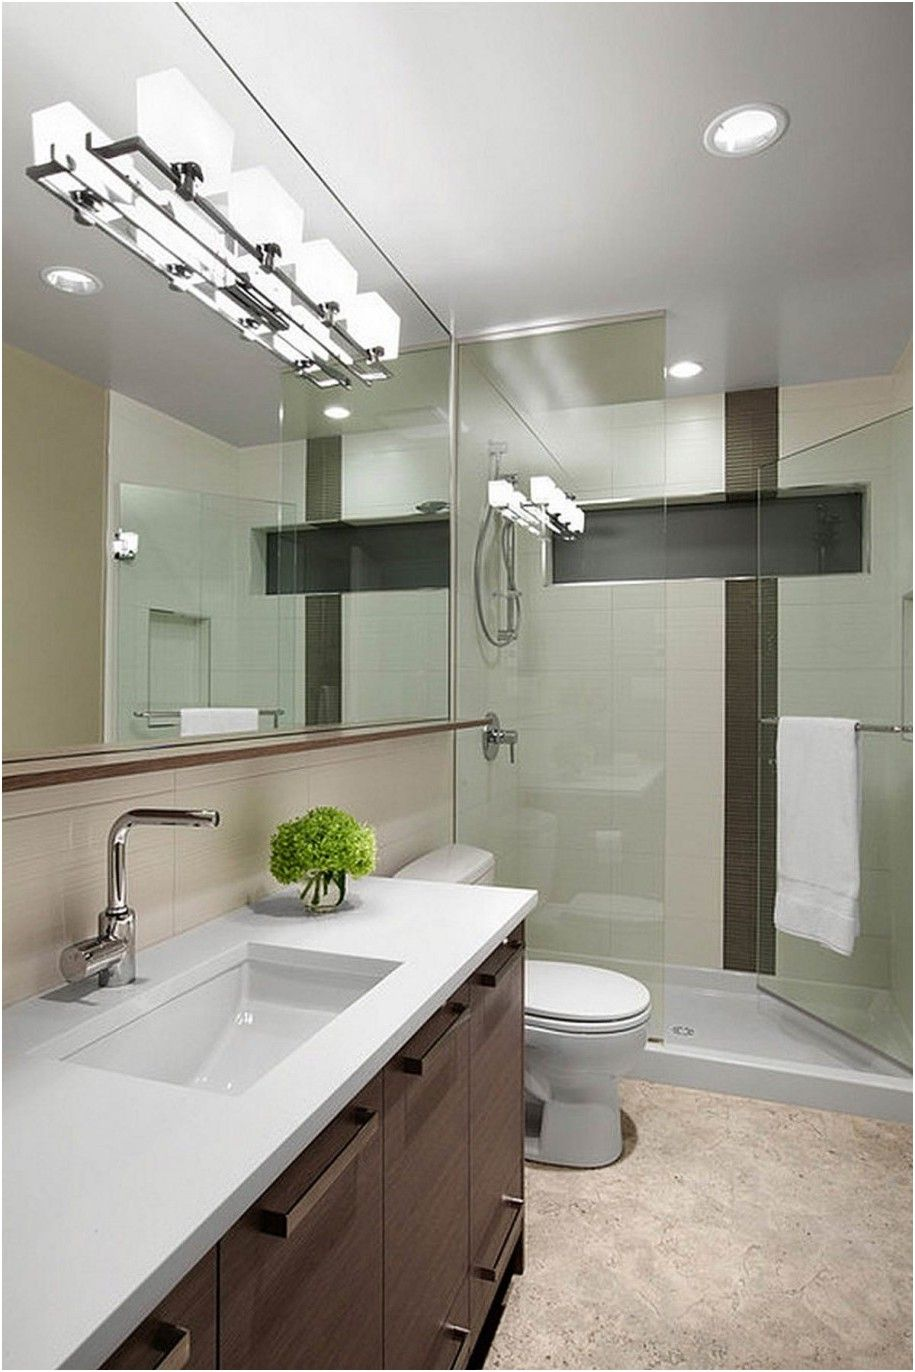 bathroom bathroom lighting spotlights from Bathroom Lighting ...